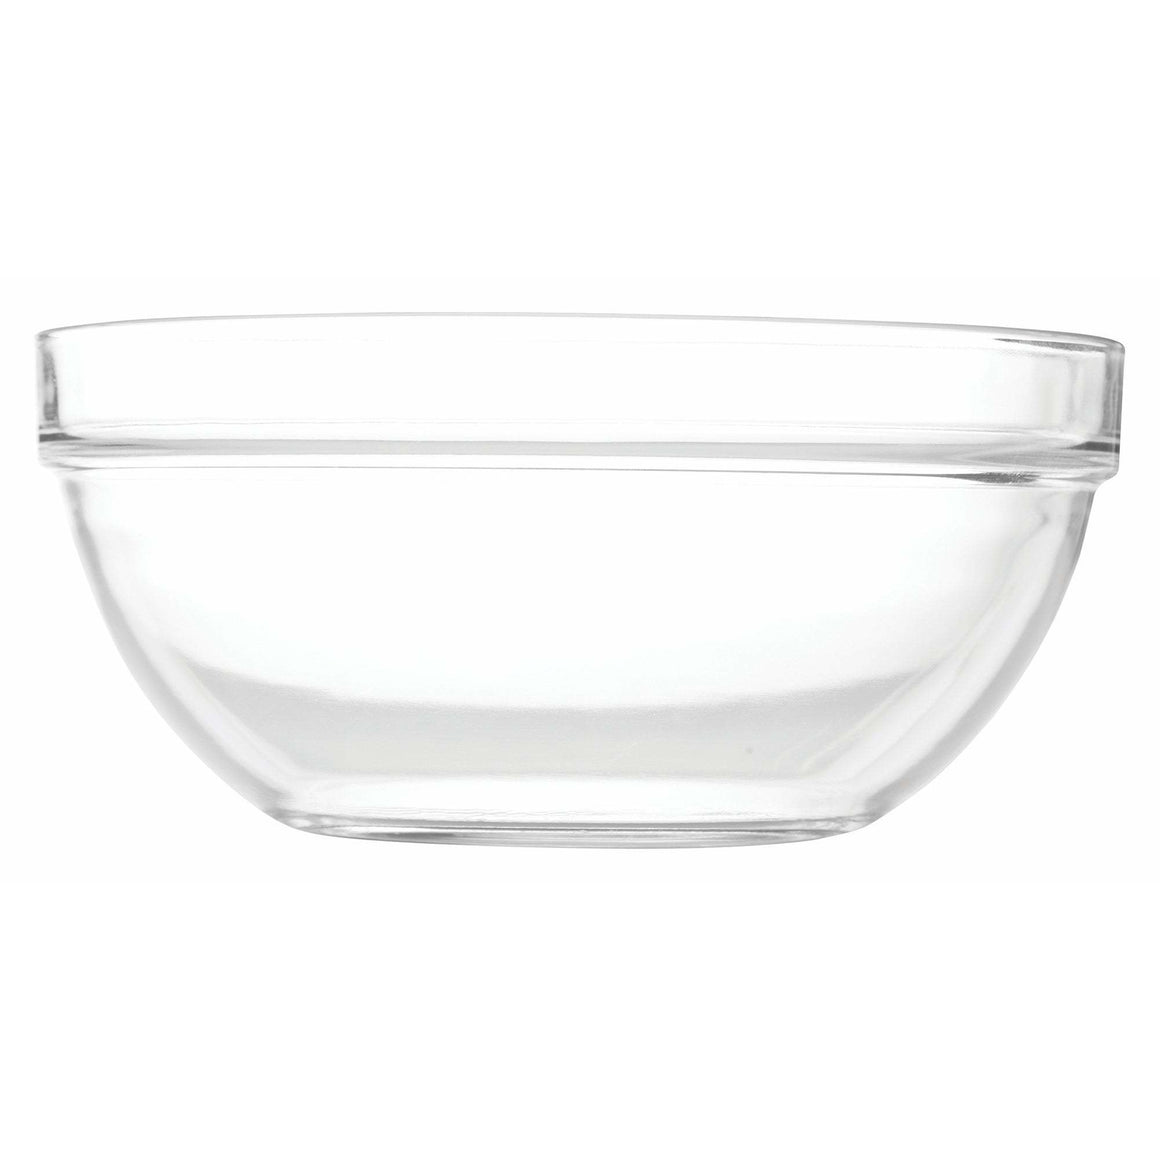 Winco - TDSF-4-GLS - Glass Bowl for TDSF-4 - Buffet Service - Maltese & Co New and Used  restaurant Equipment